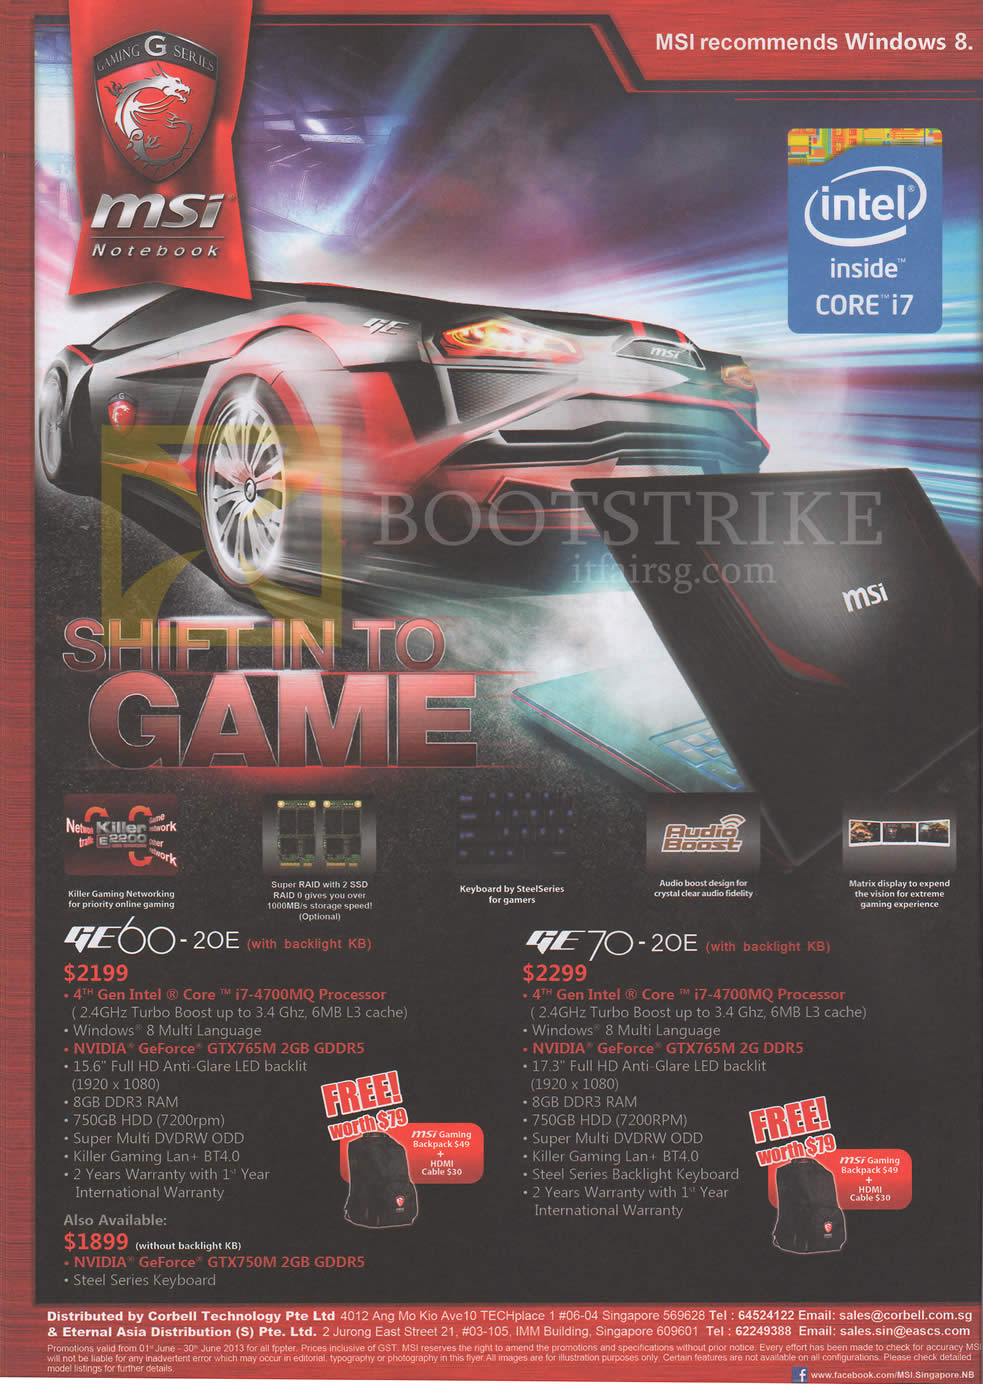 PC SHOW 2013 price list image brochure of MSI Notebooks GE60-20E, GE70-20E